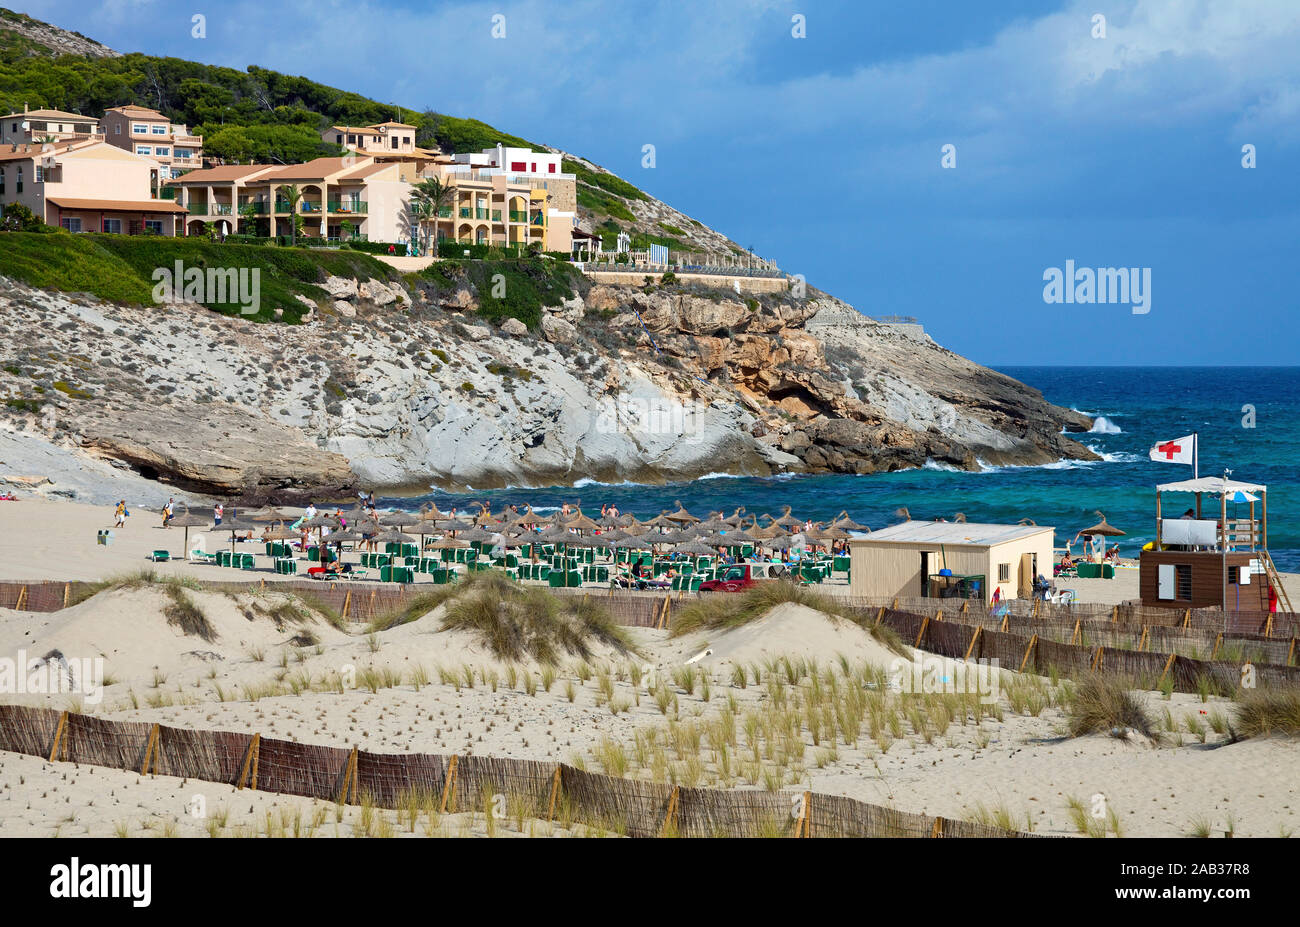 Protected area with dune grass, sourrounded by fence, conservation area at Cala Mesquida, Cala Ratjada, Mallorca, Balearic islands, Spain Stock Photo